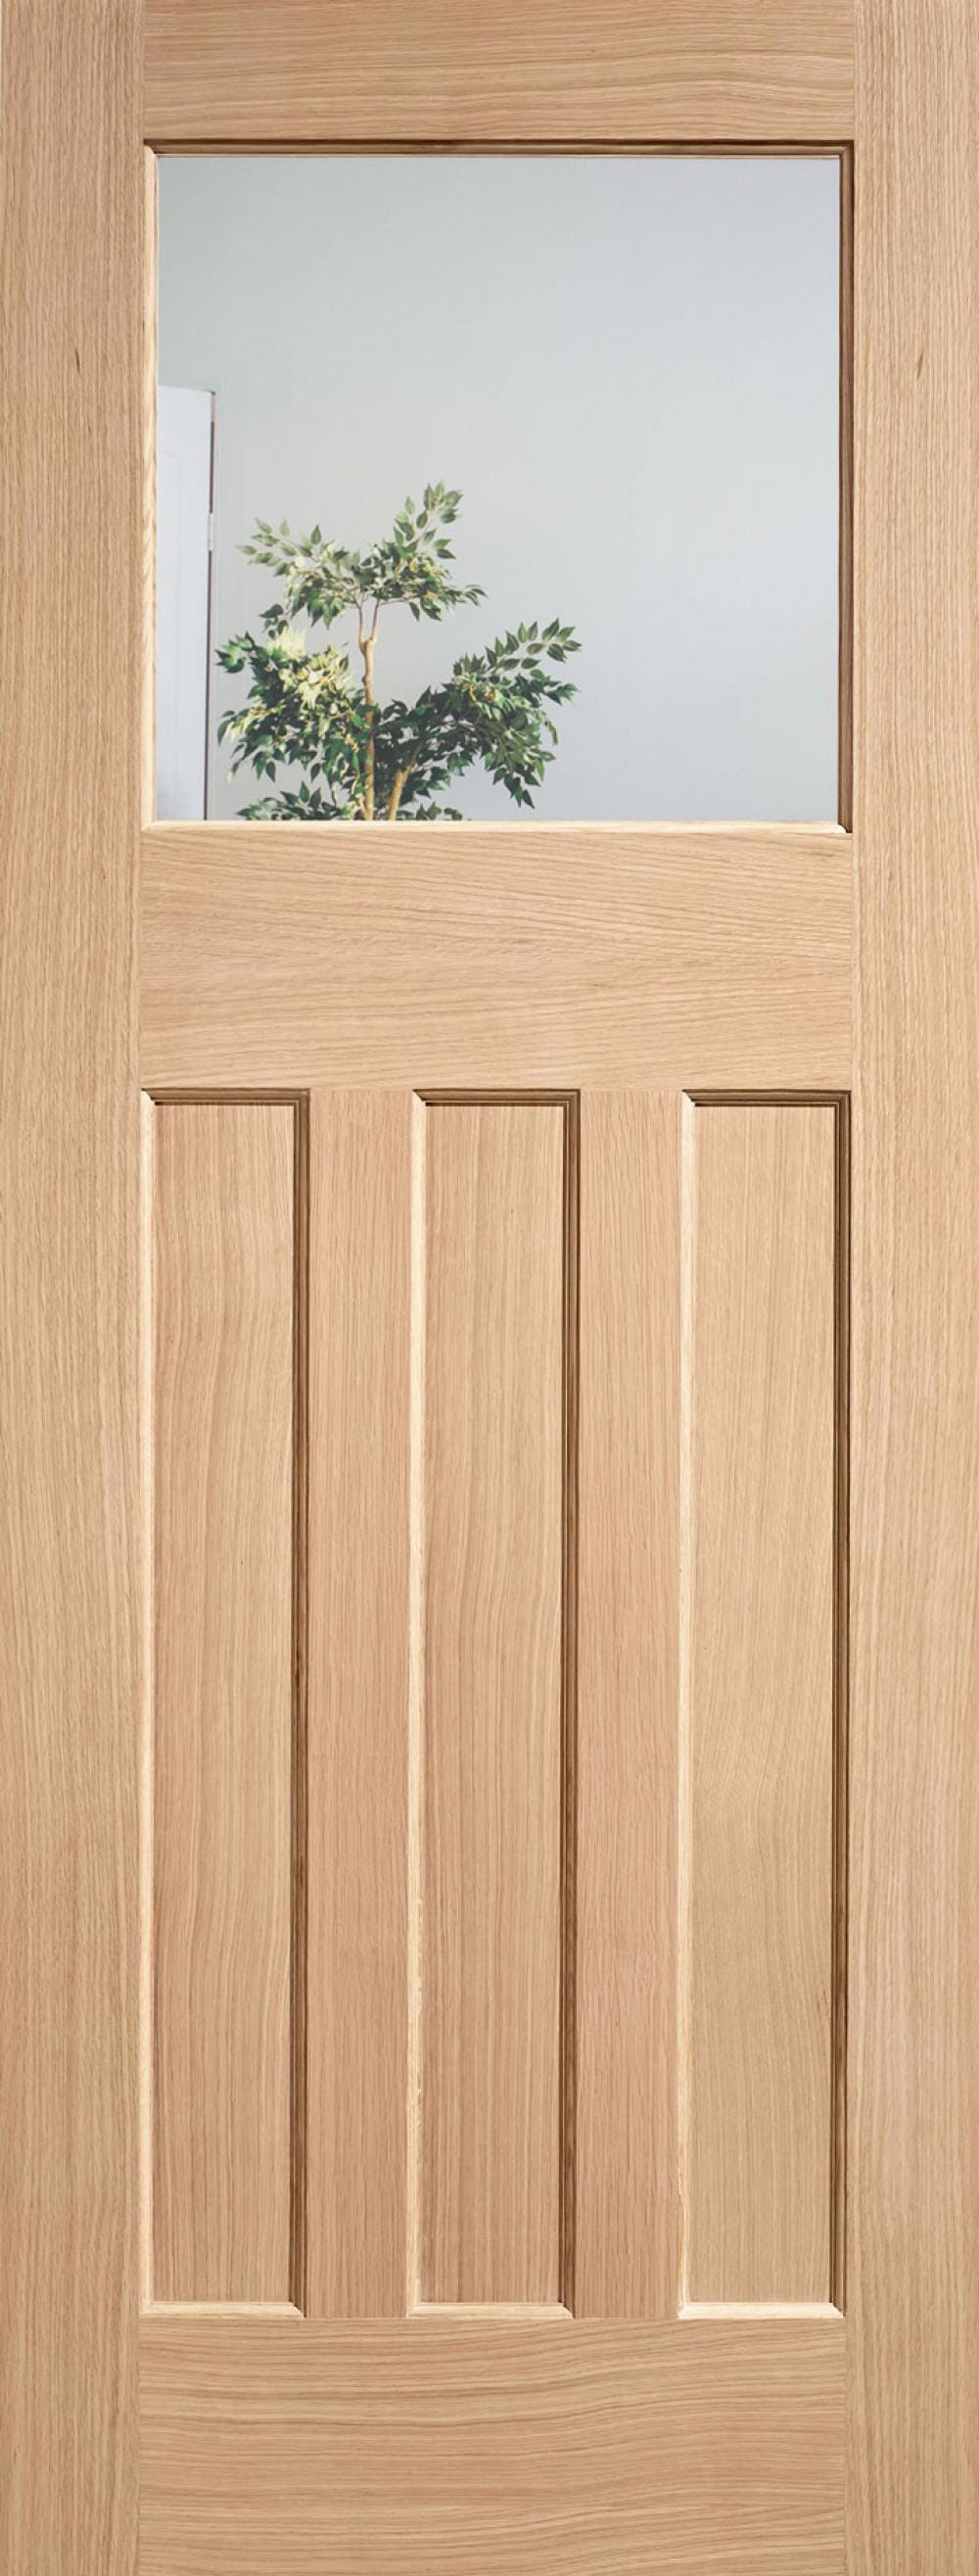 Dx 30s Style Oak Door - Clear Glass Image